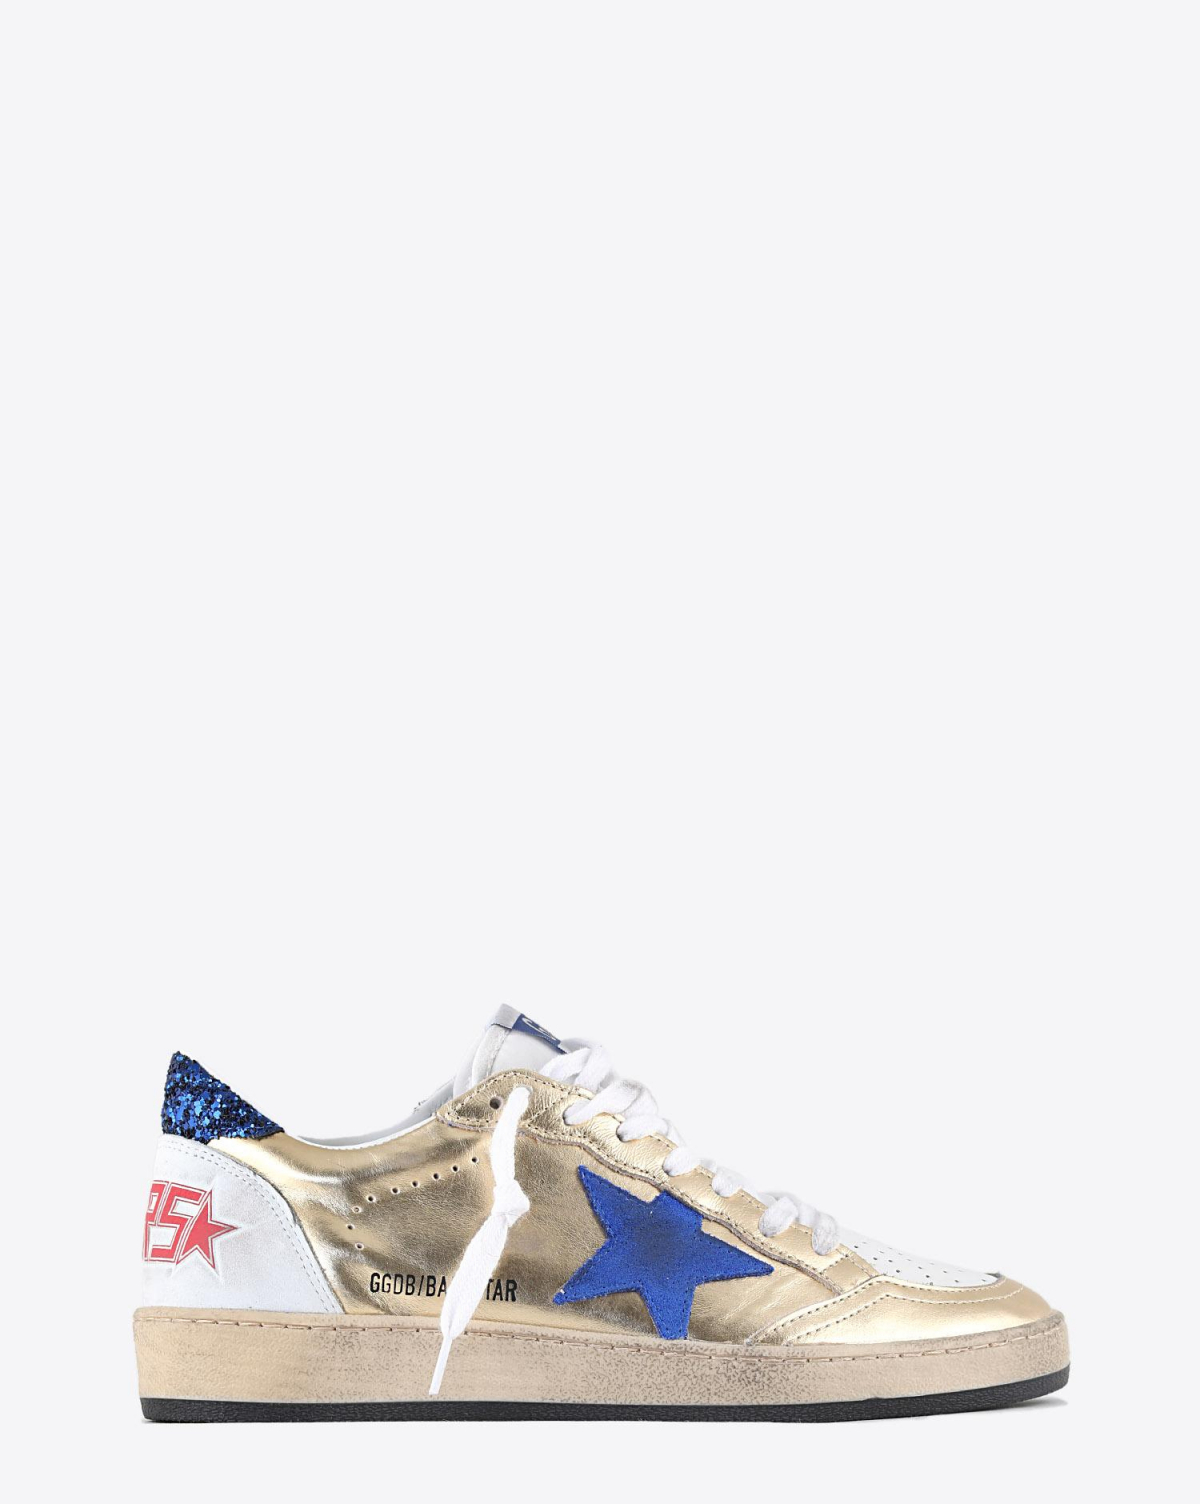 Golden Goose Woman Pré-Collection Ball Star - Gold - White - Blue 80222